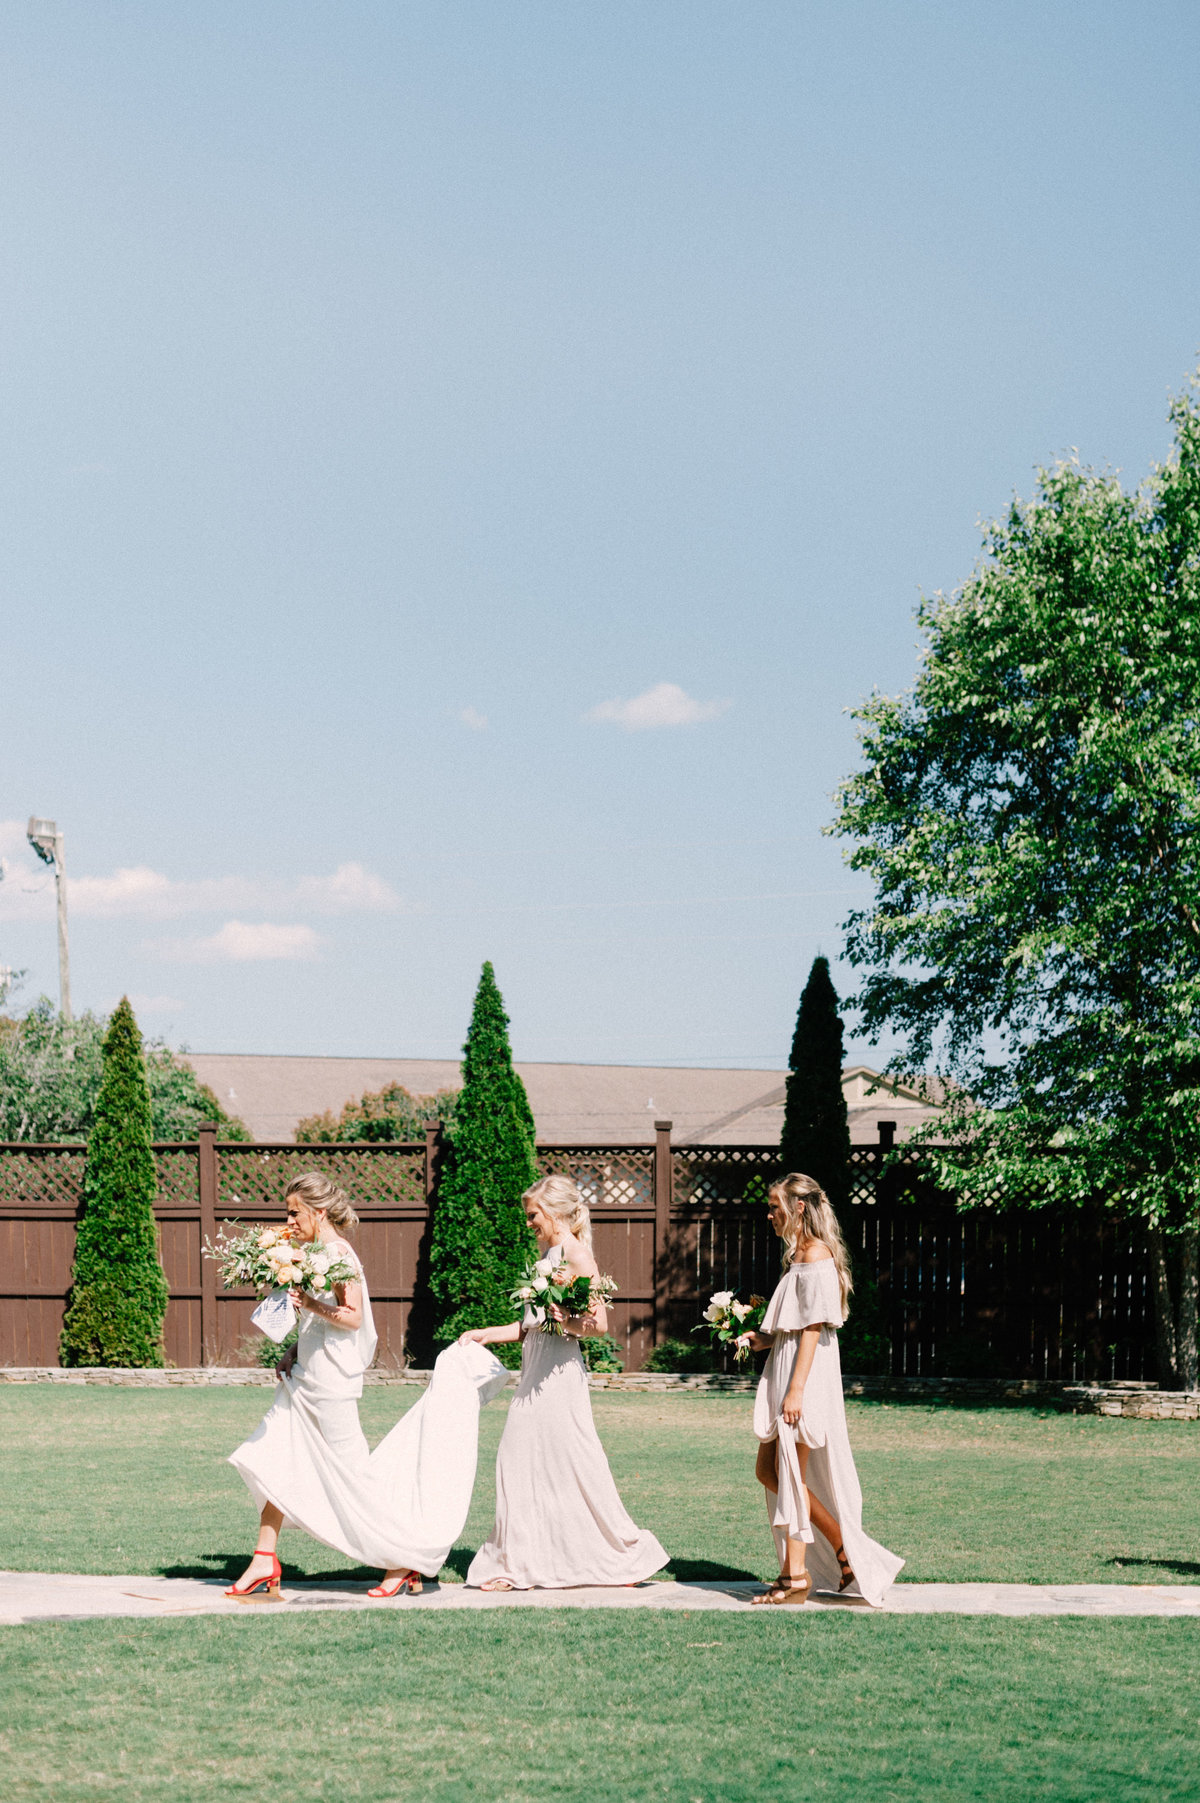 Bridesmaids helping bride in Wedding at Park Crest Hoover Alabama